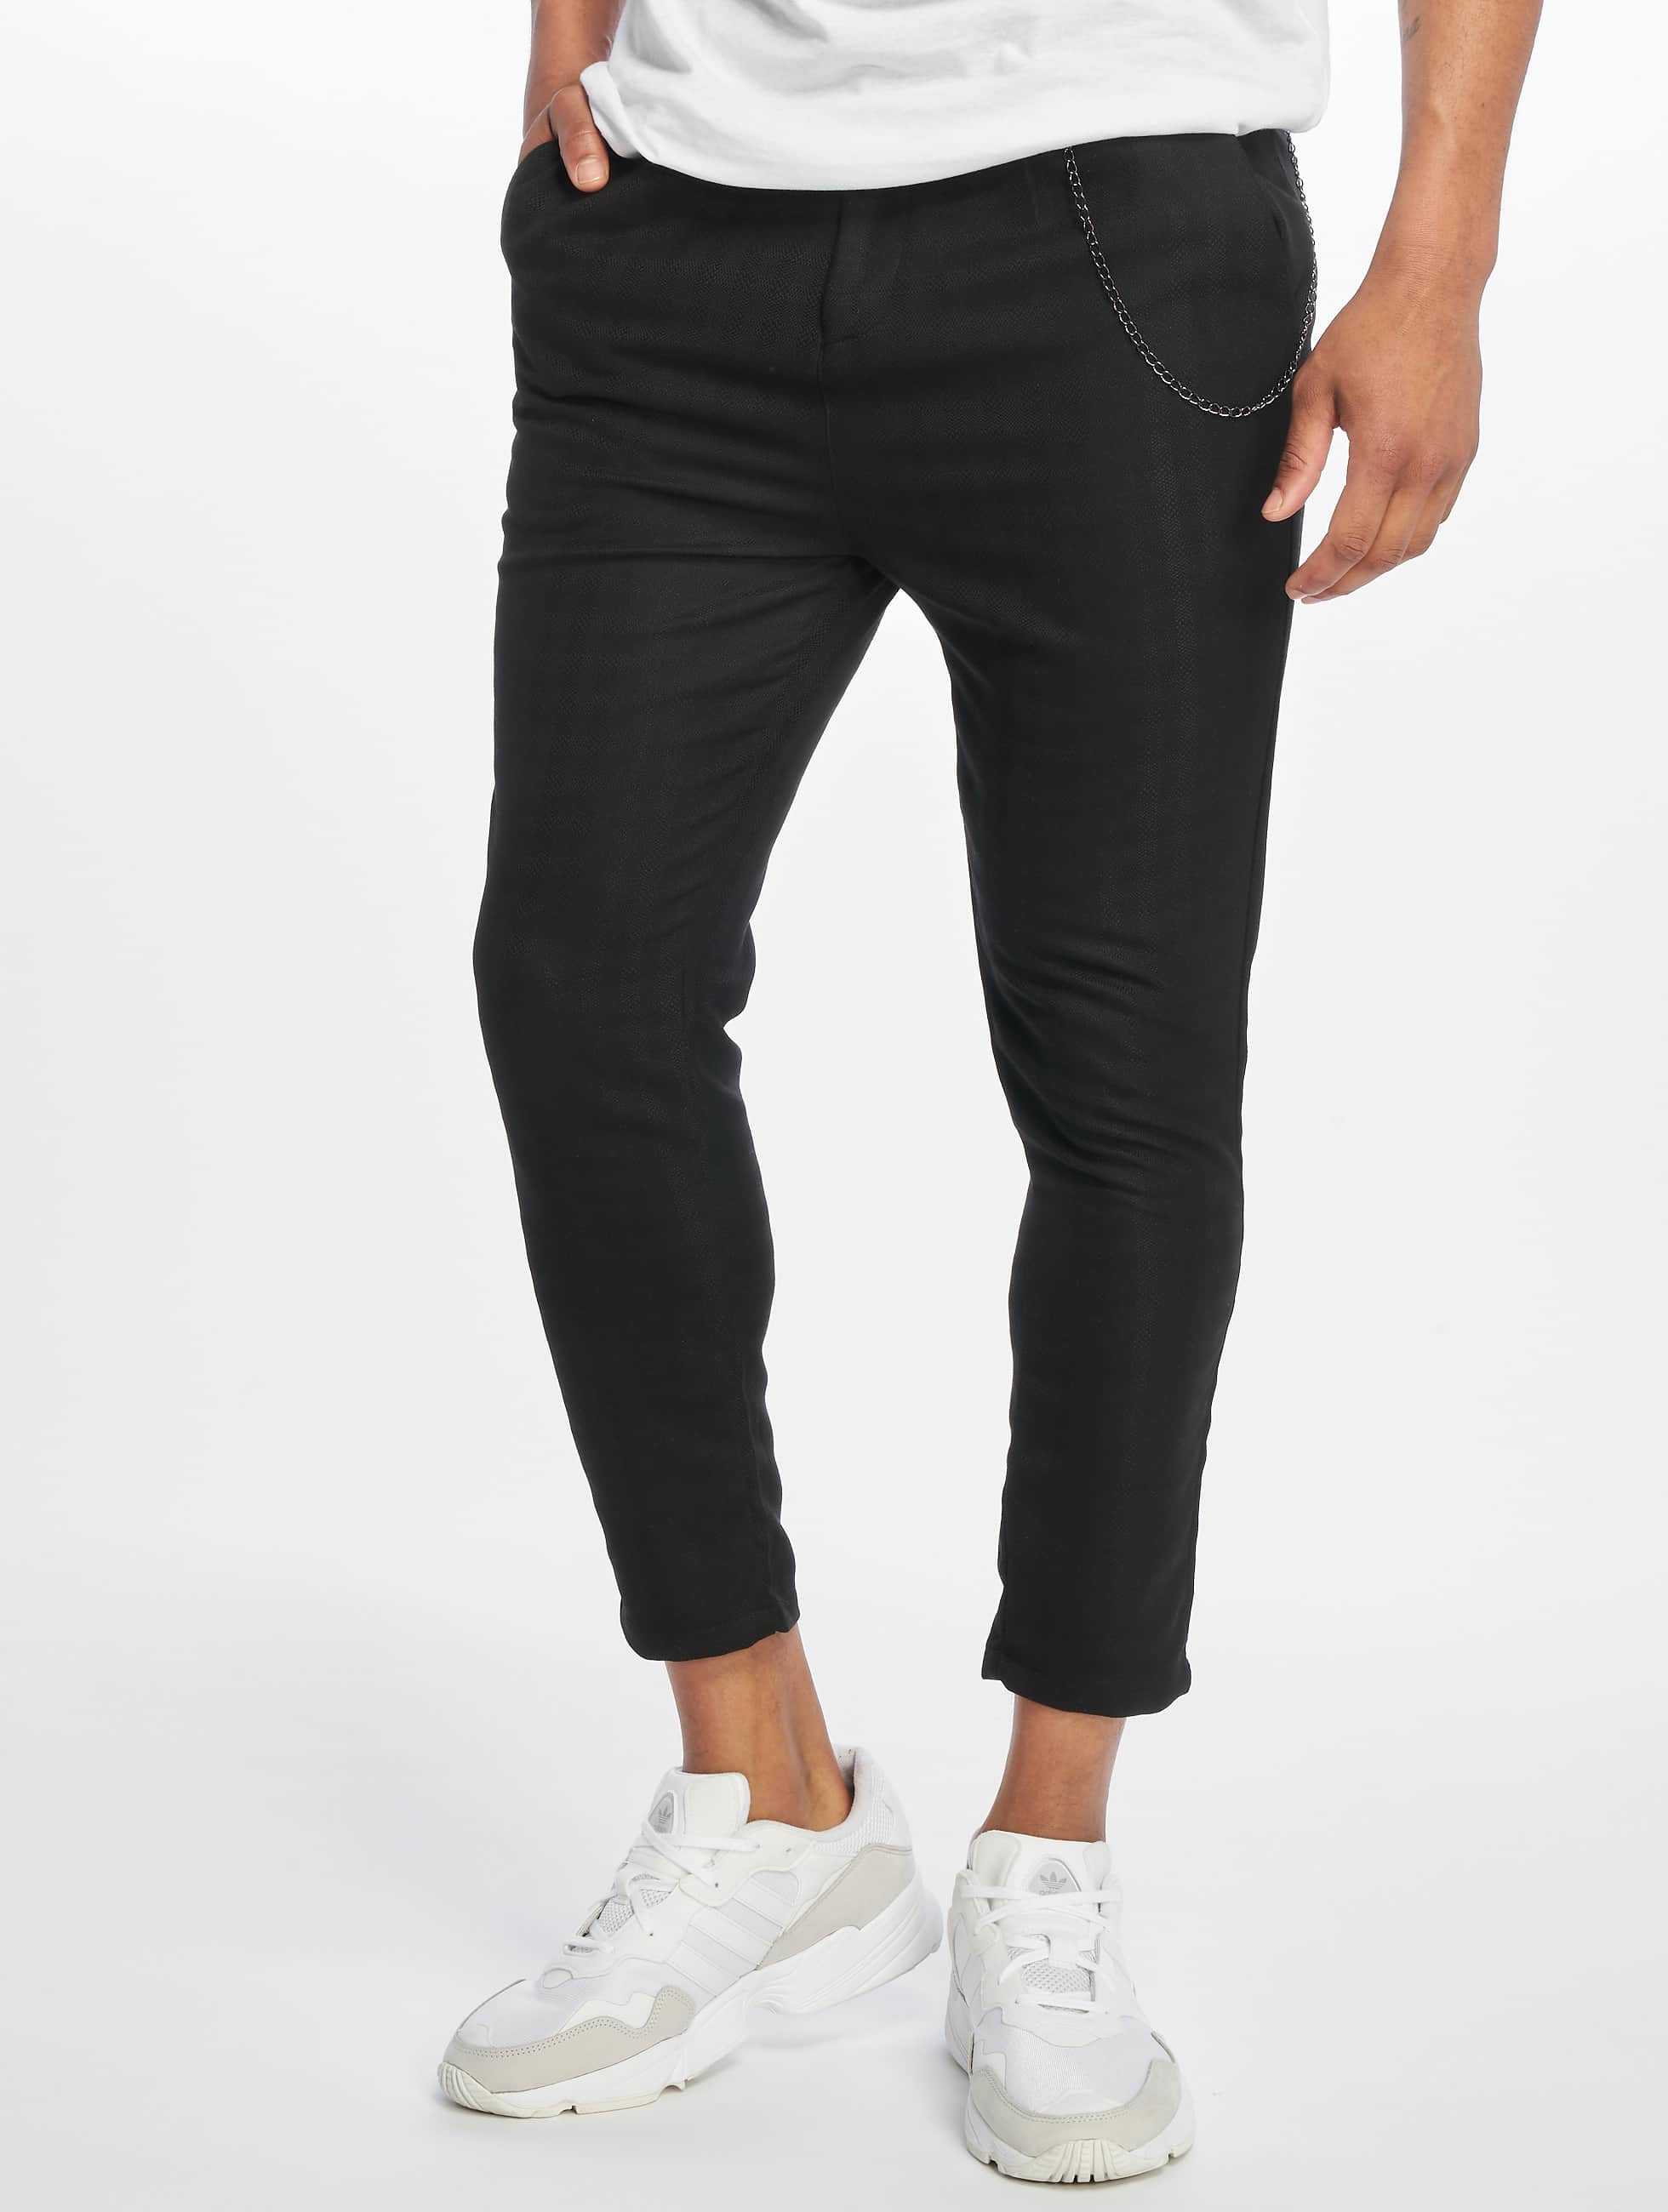 2Y / Chino Toby in black W 30